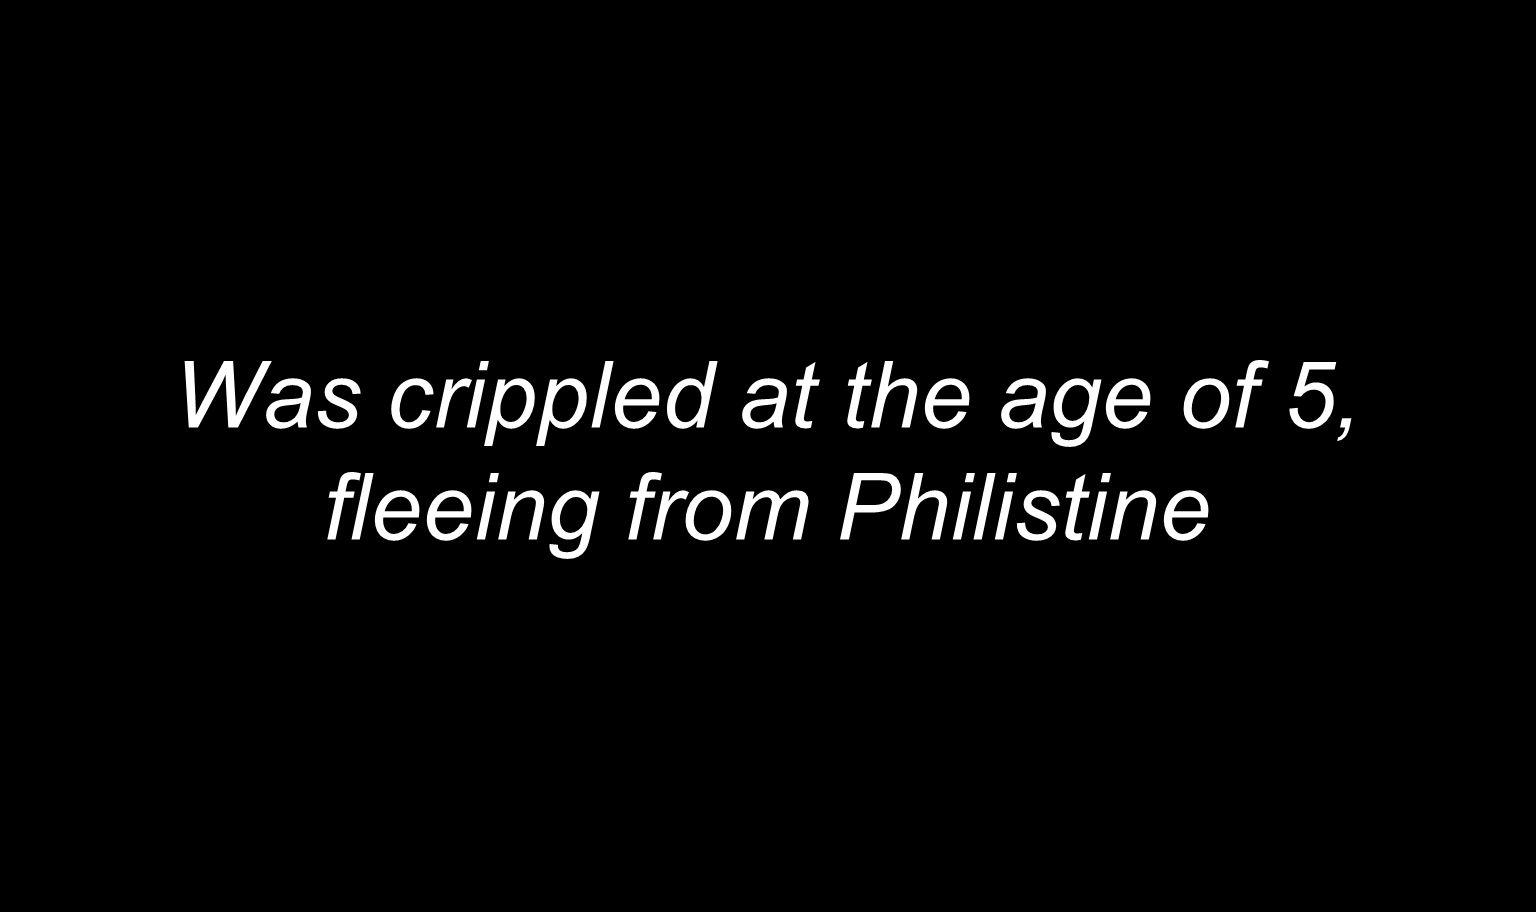 Was crippled at the age of 5, fleeing from Philistine